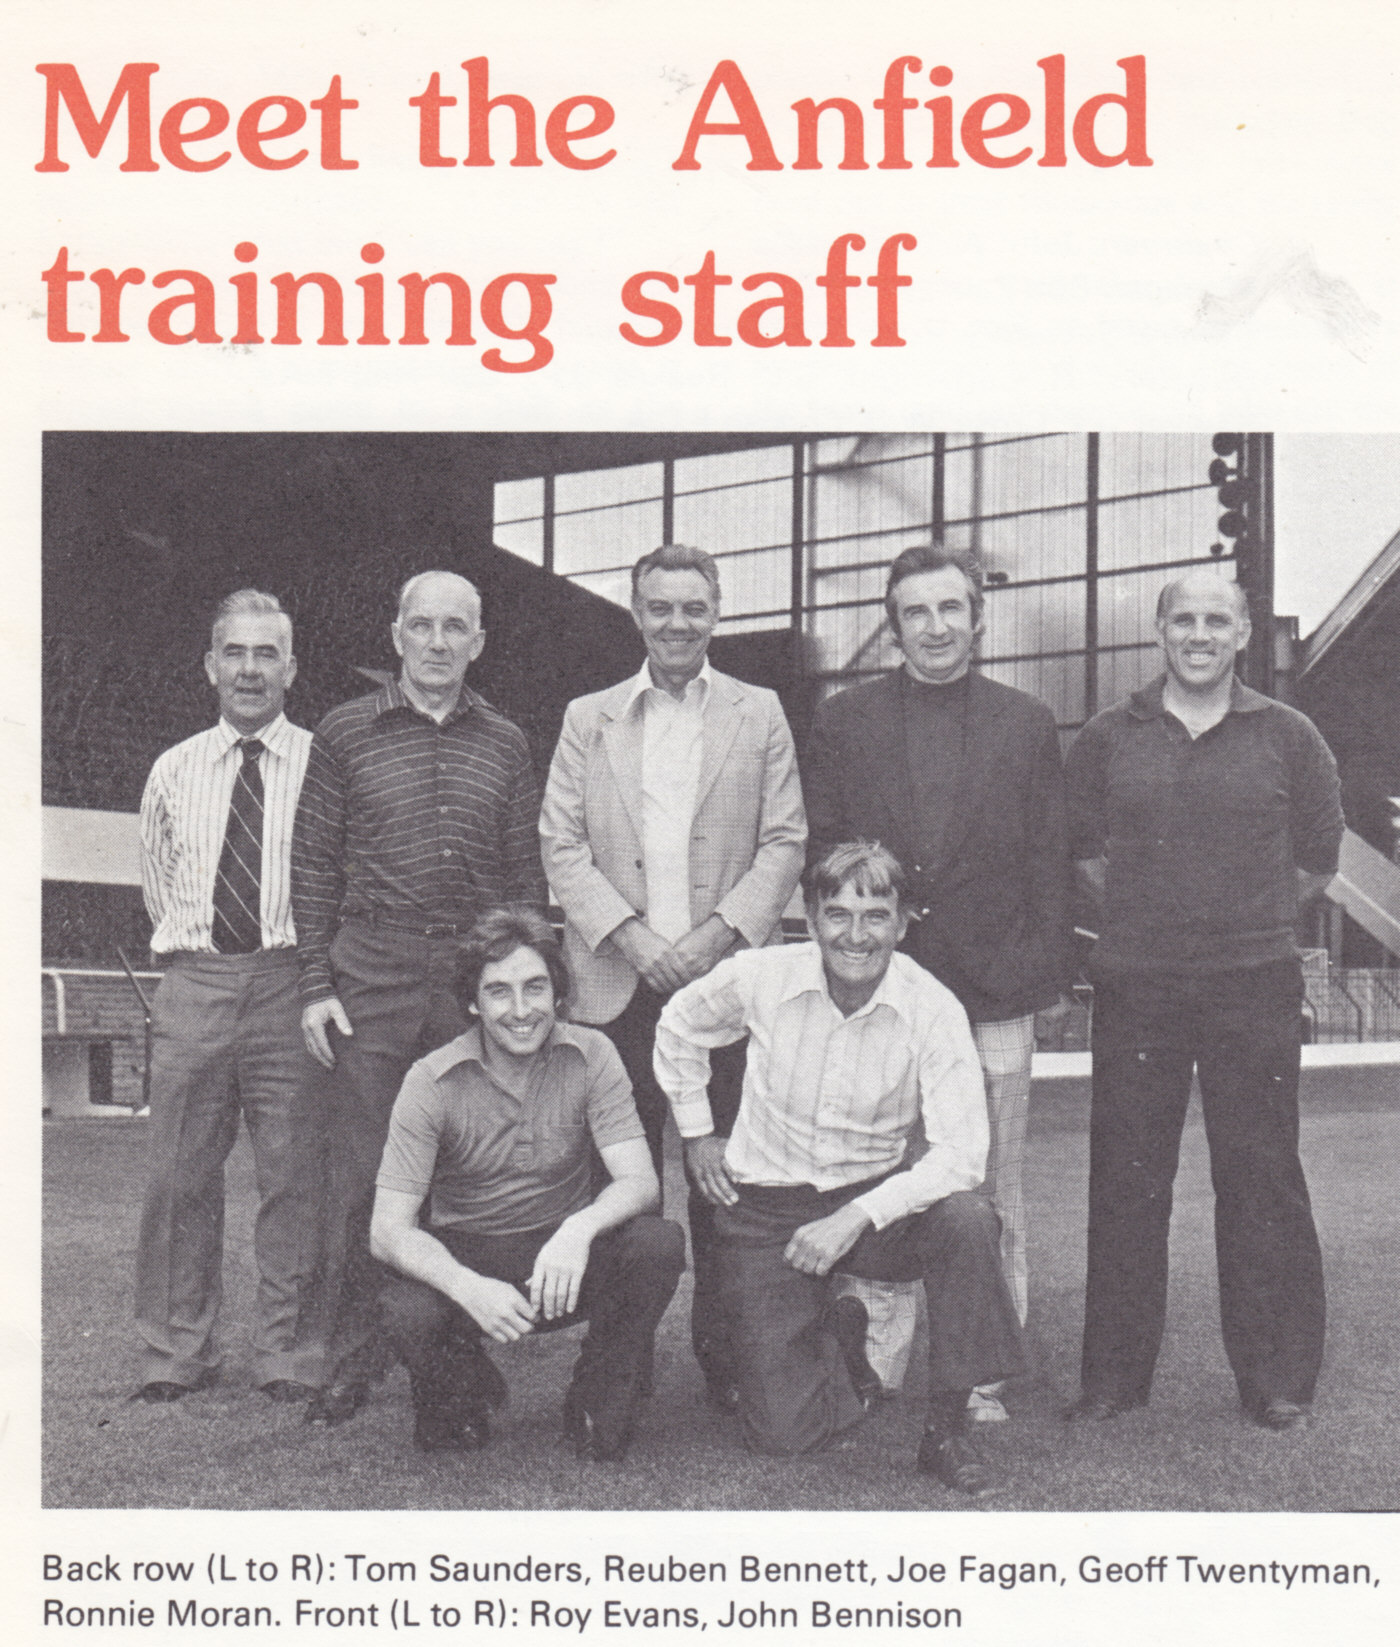 Meet the training staff - 30 December 1979